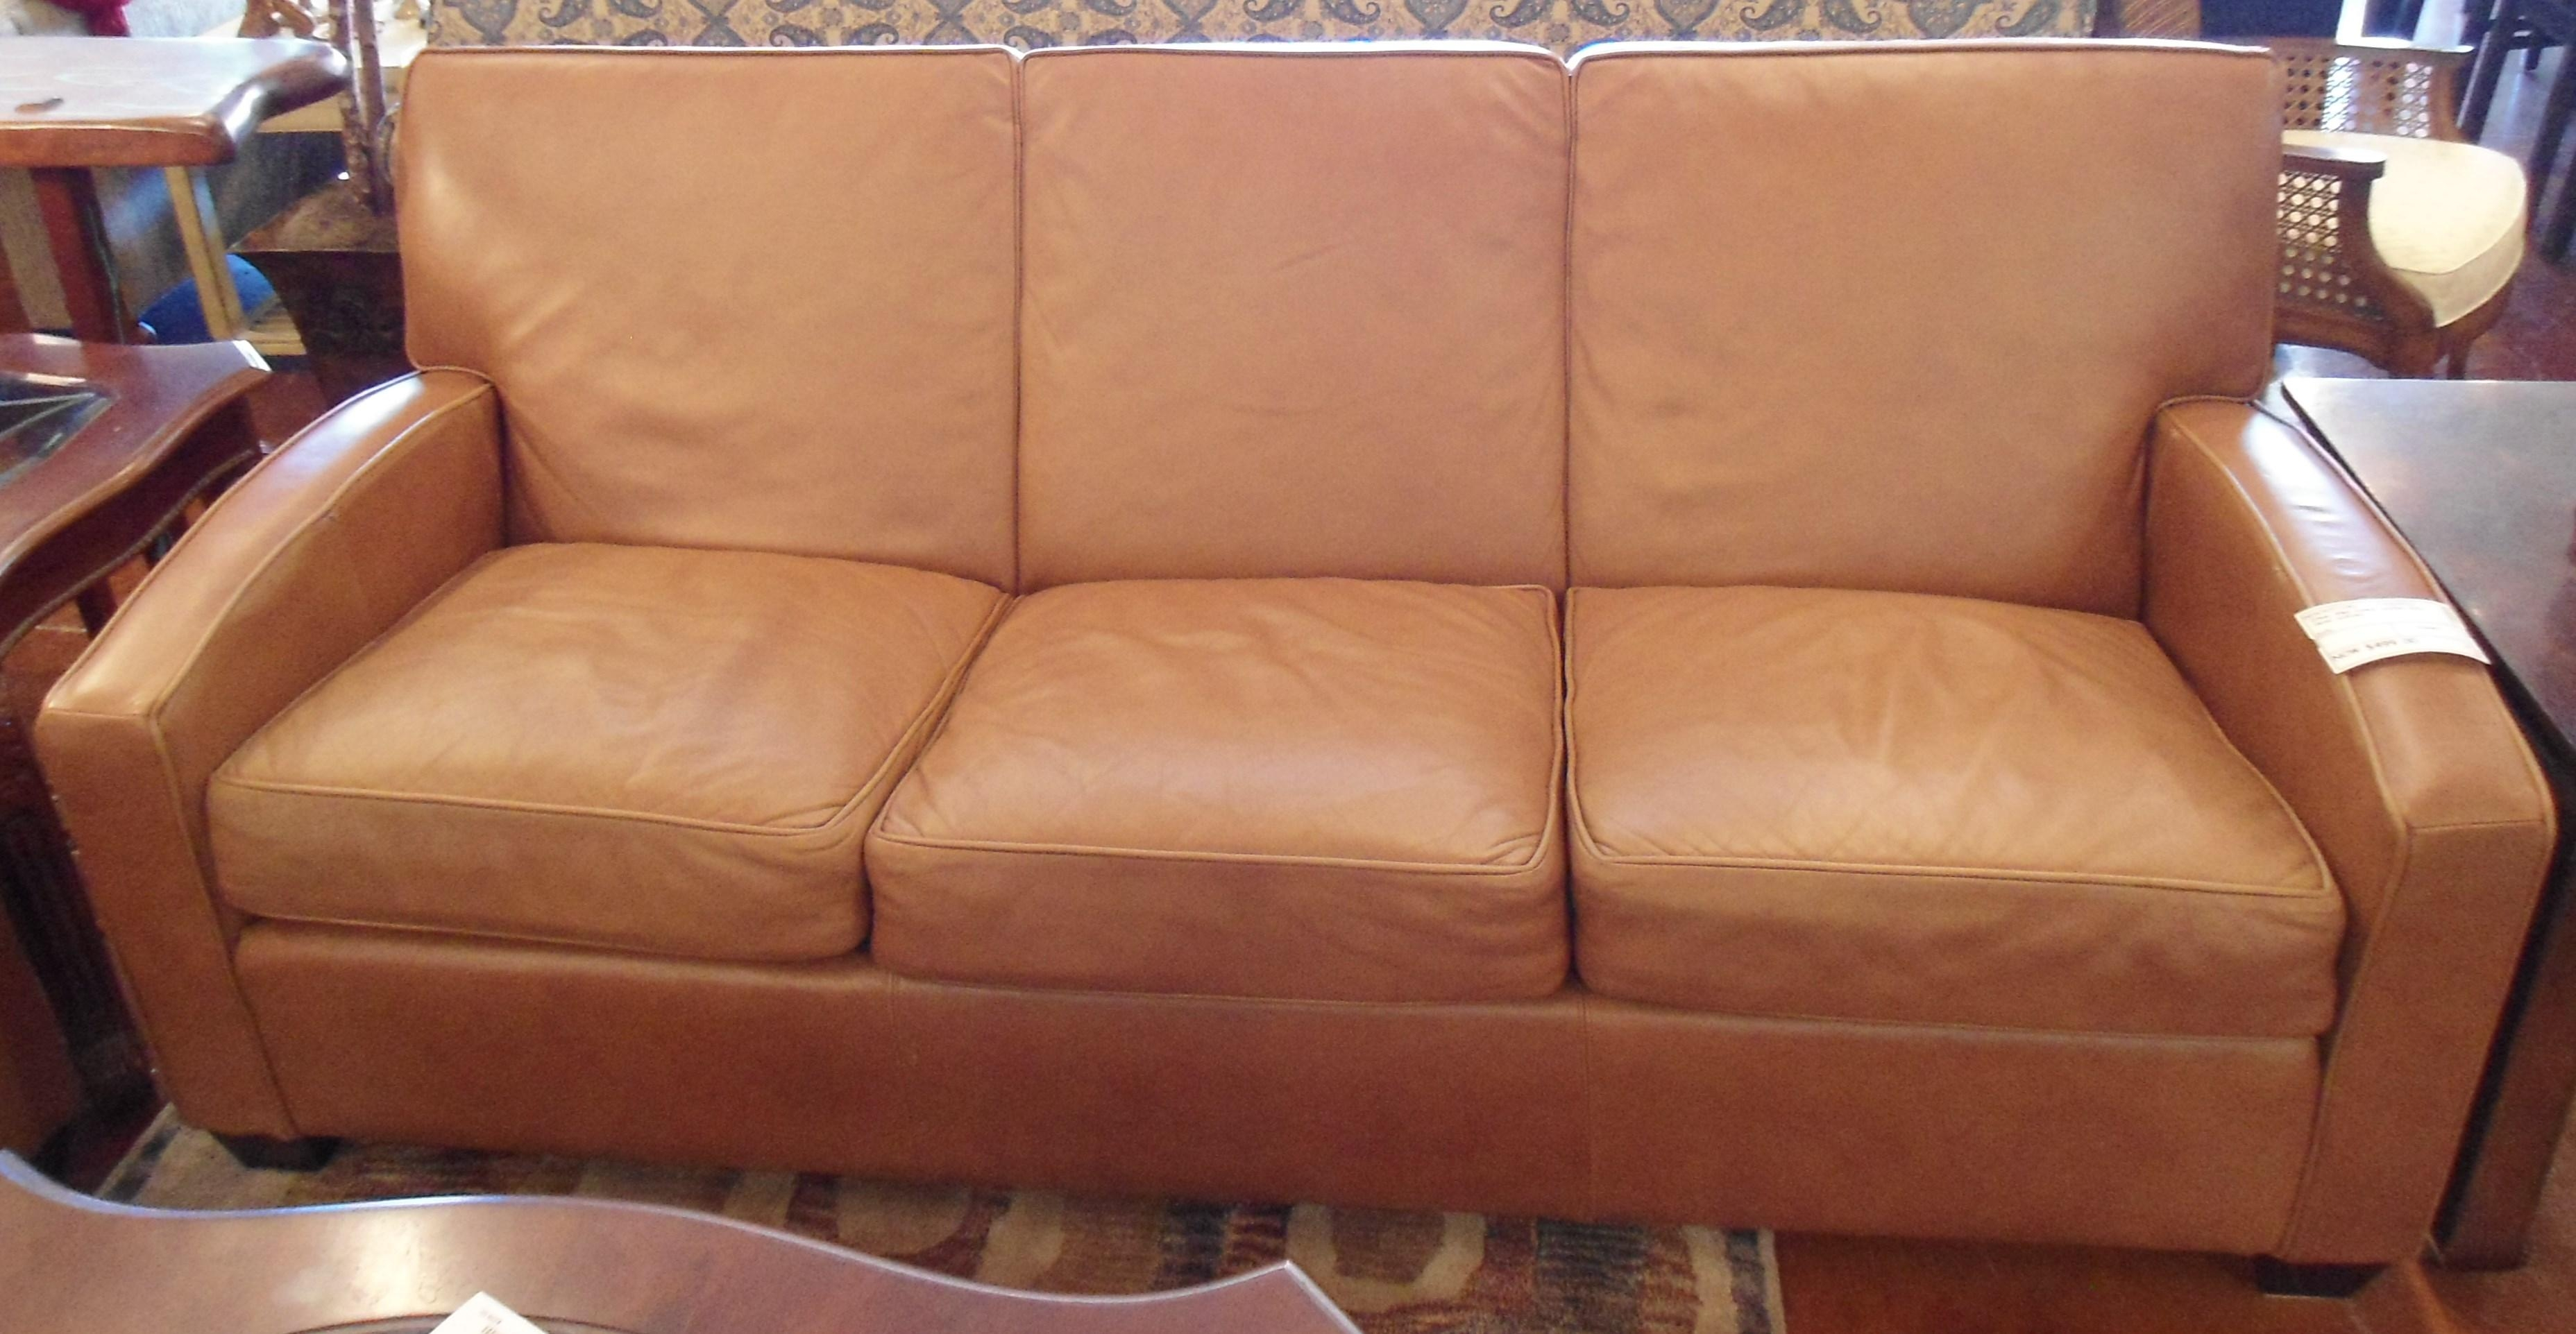 Furniture: Simple Living Room Sofas Designethan Allen Bennett Pertaining To Ethan Allen Sofas And Chairs (View 16 of 20)